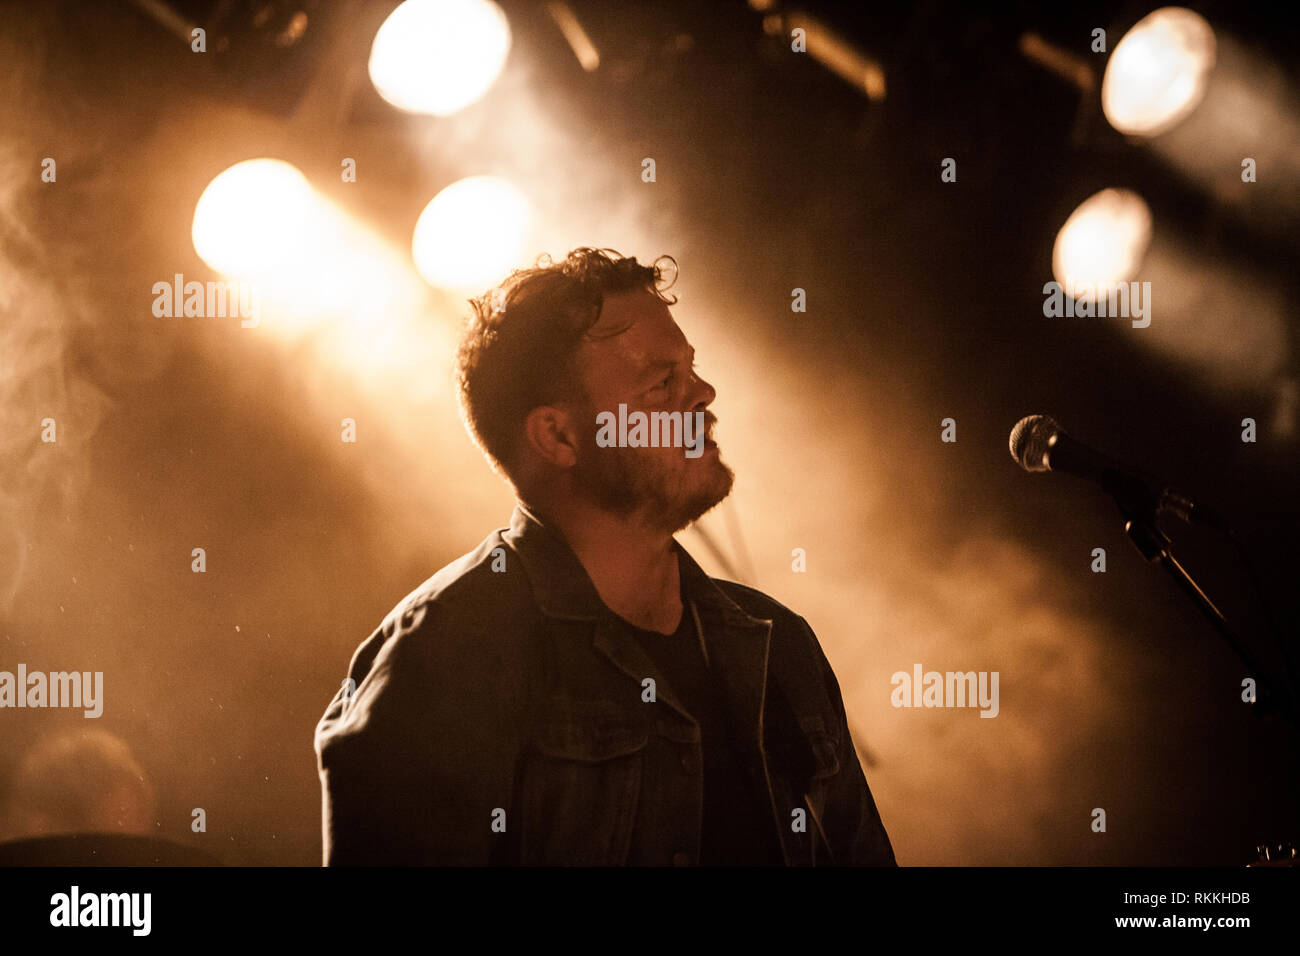 The American band The Lone Bellow performs a live concert at VEGA in Copenhagen. Here musician Brian Elmquist is seen live on stage. Denmark, 05/02 2016. EXCLUDING DENMARK. Stock Photo